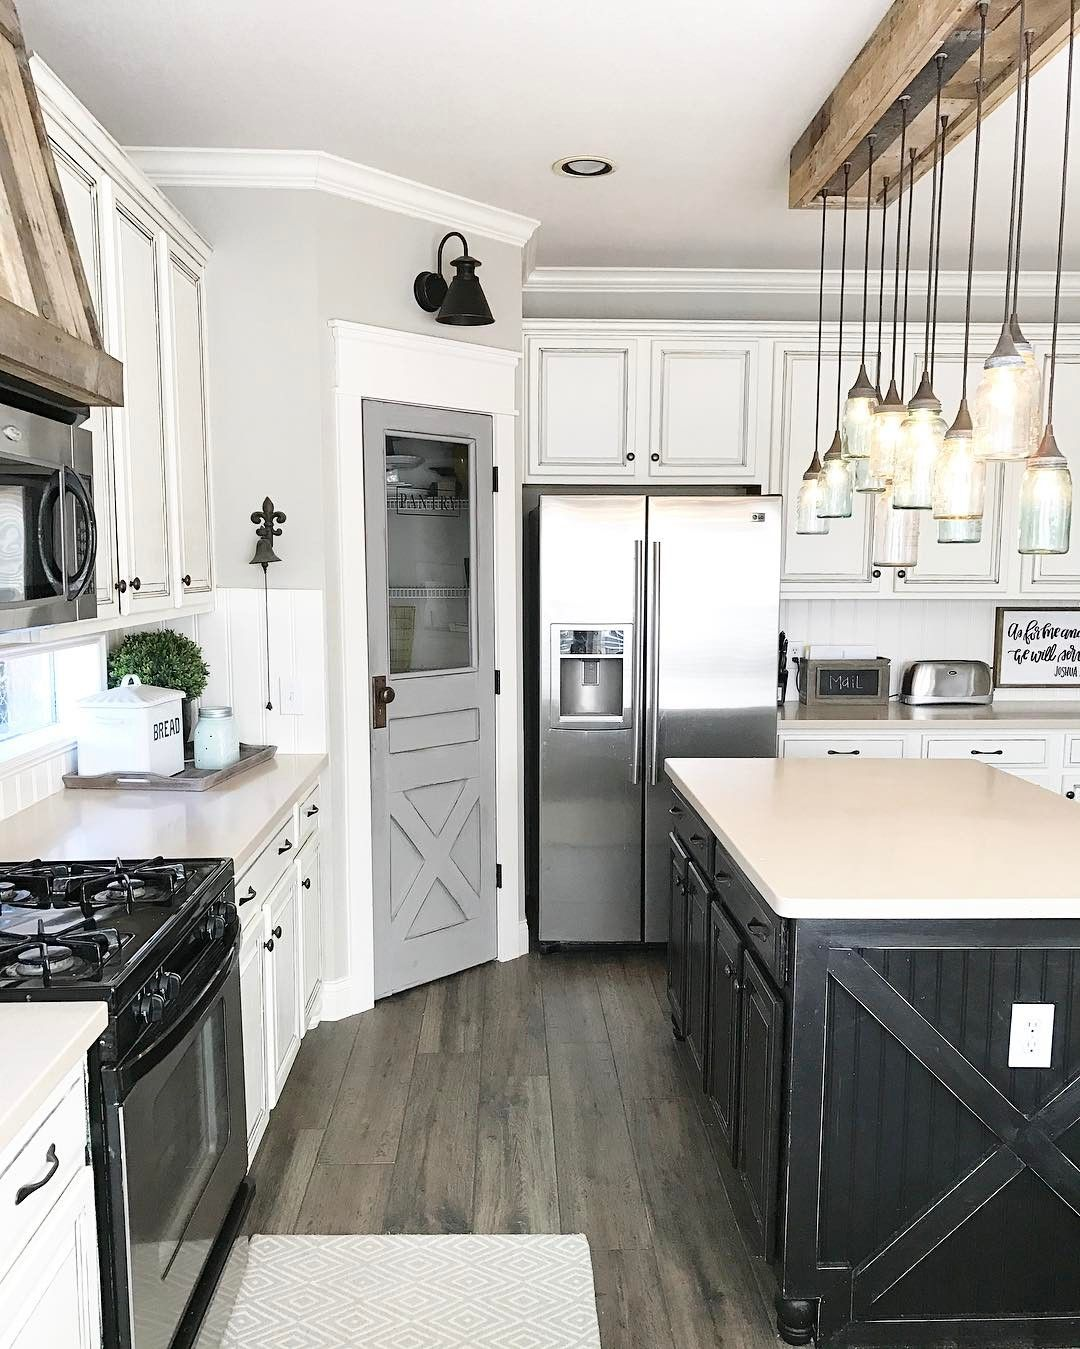 Modern Farmhouse Style Decorating Ideas On A Budget 7 With Images Rustic Farmhouse Kitchen Farmhouse Kitchen Decor